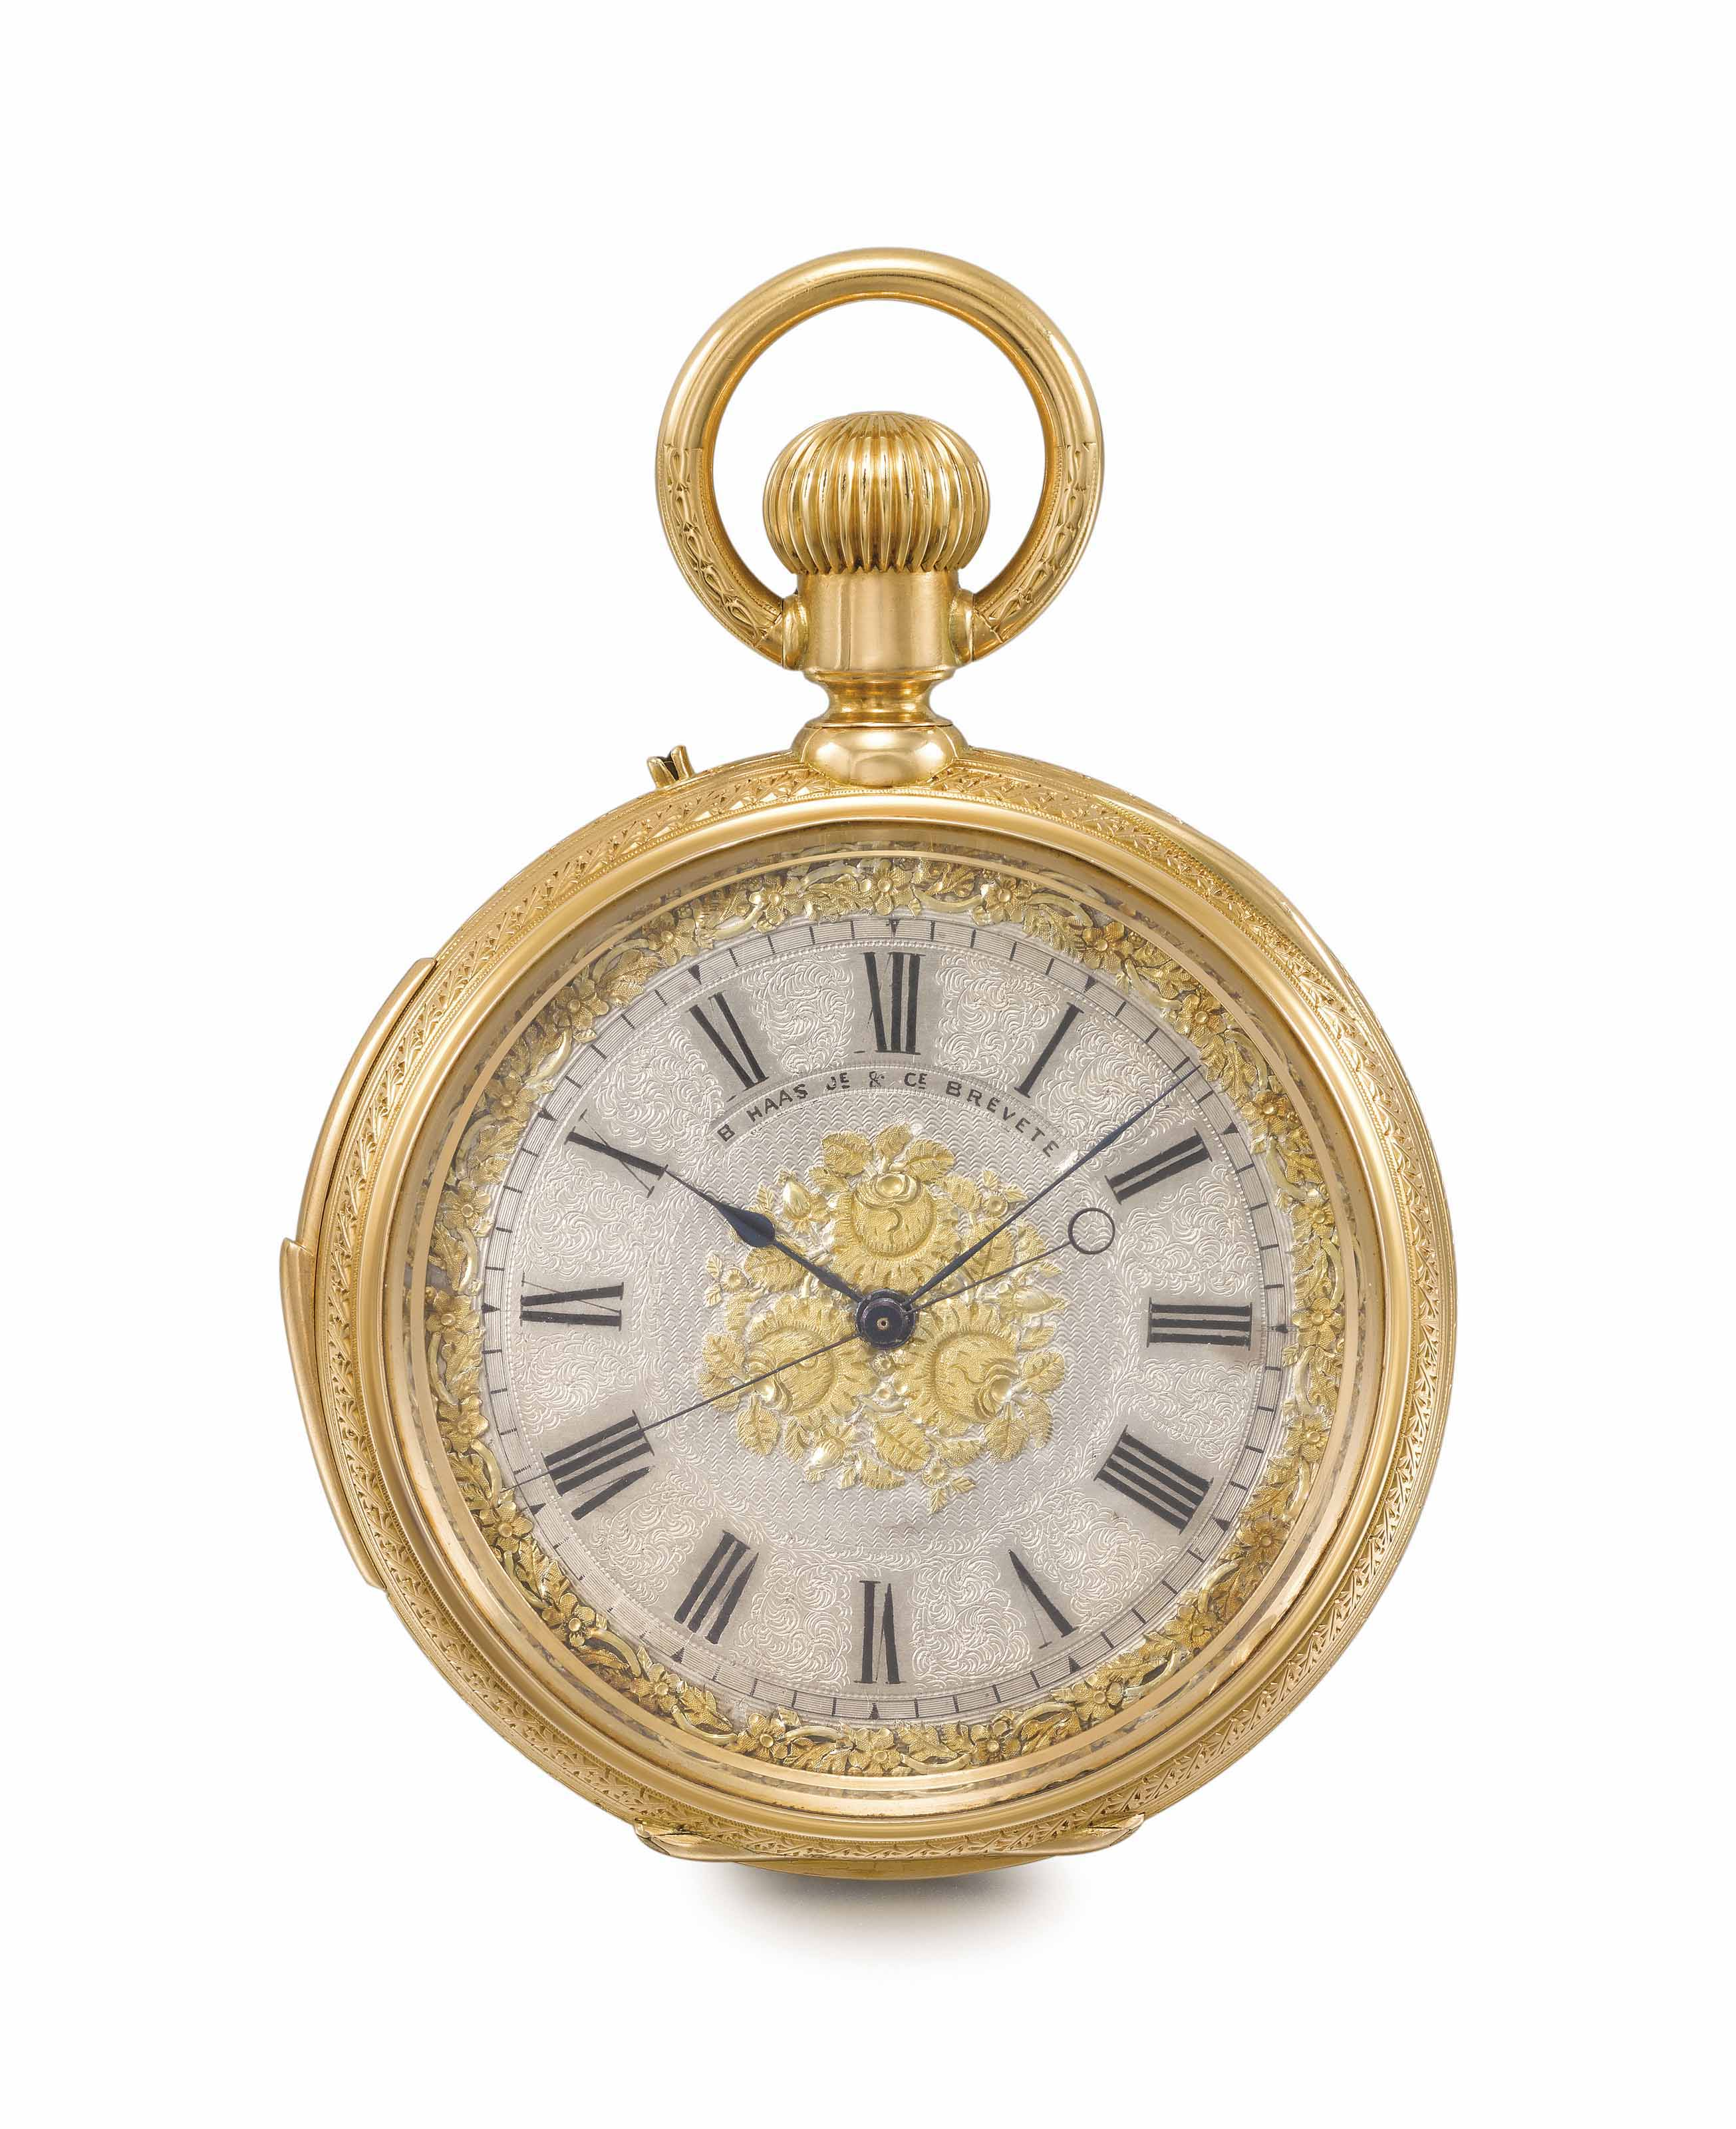 B. Haas Jeune & Cie. A fine rare and unusual 18K gold minute repeating double-dial two-train keyless lever chronometer with independent jump centre seconds and calendar